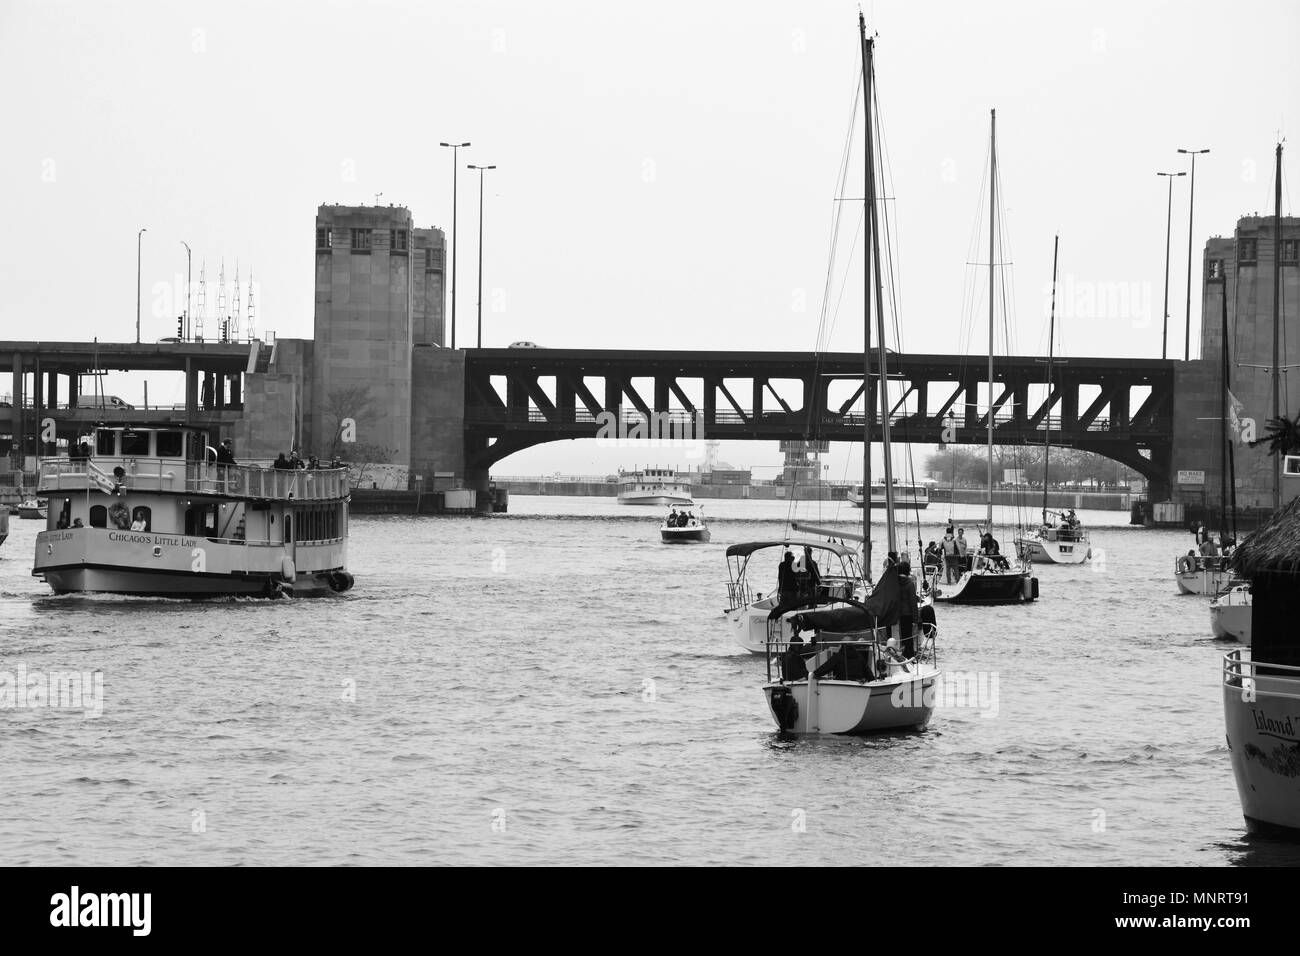 Sailboats approach the Lake Shore Drive bridge in Chicago during the spring boat run to Lake Michigan. - Stock Image